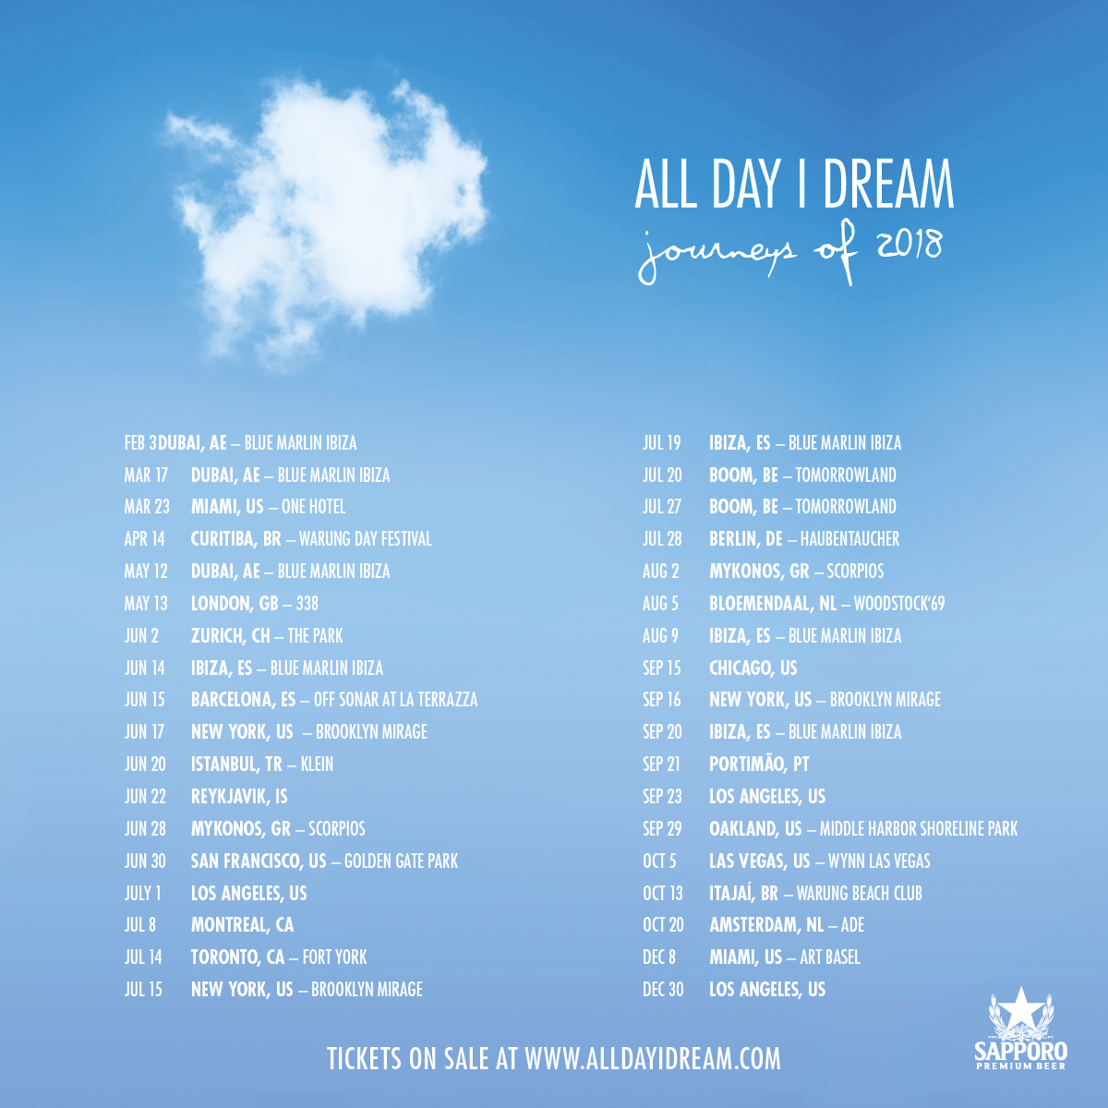 all day i dream 2018